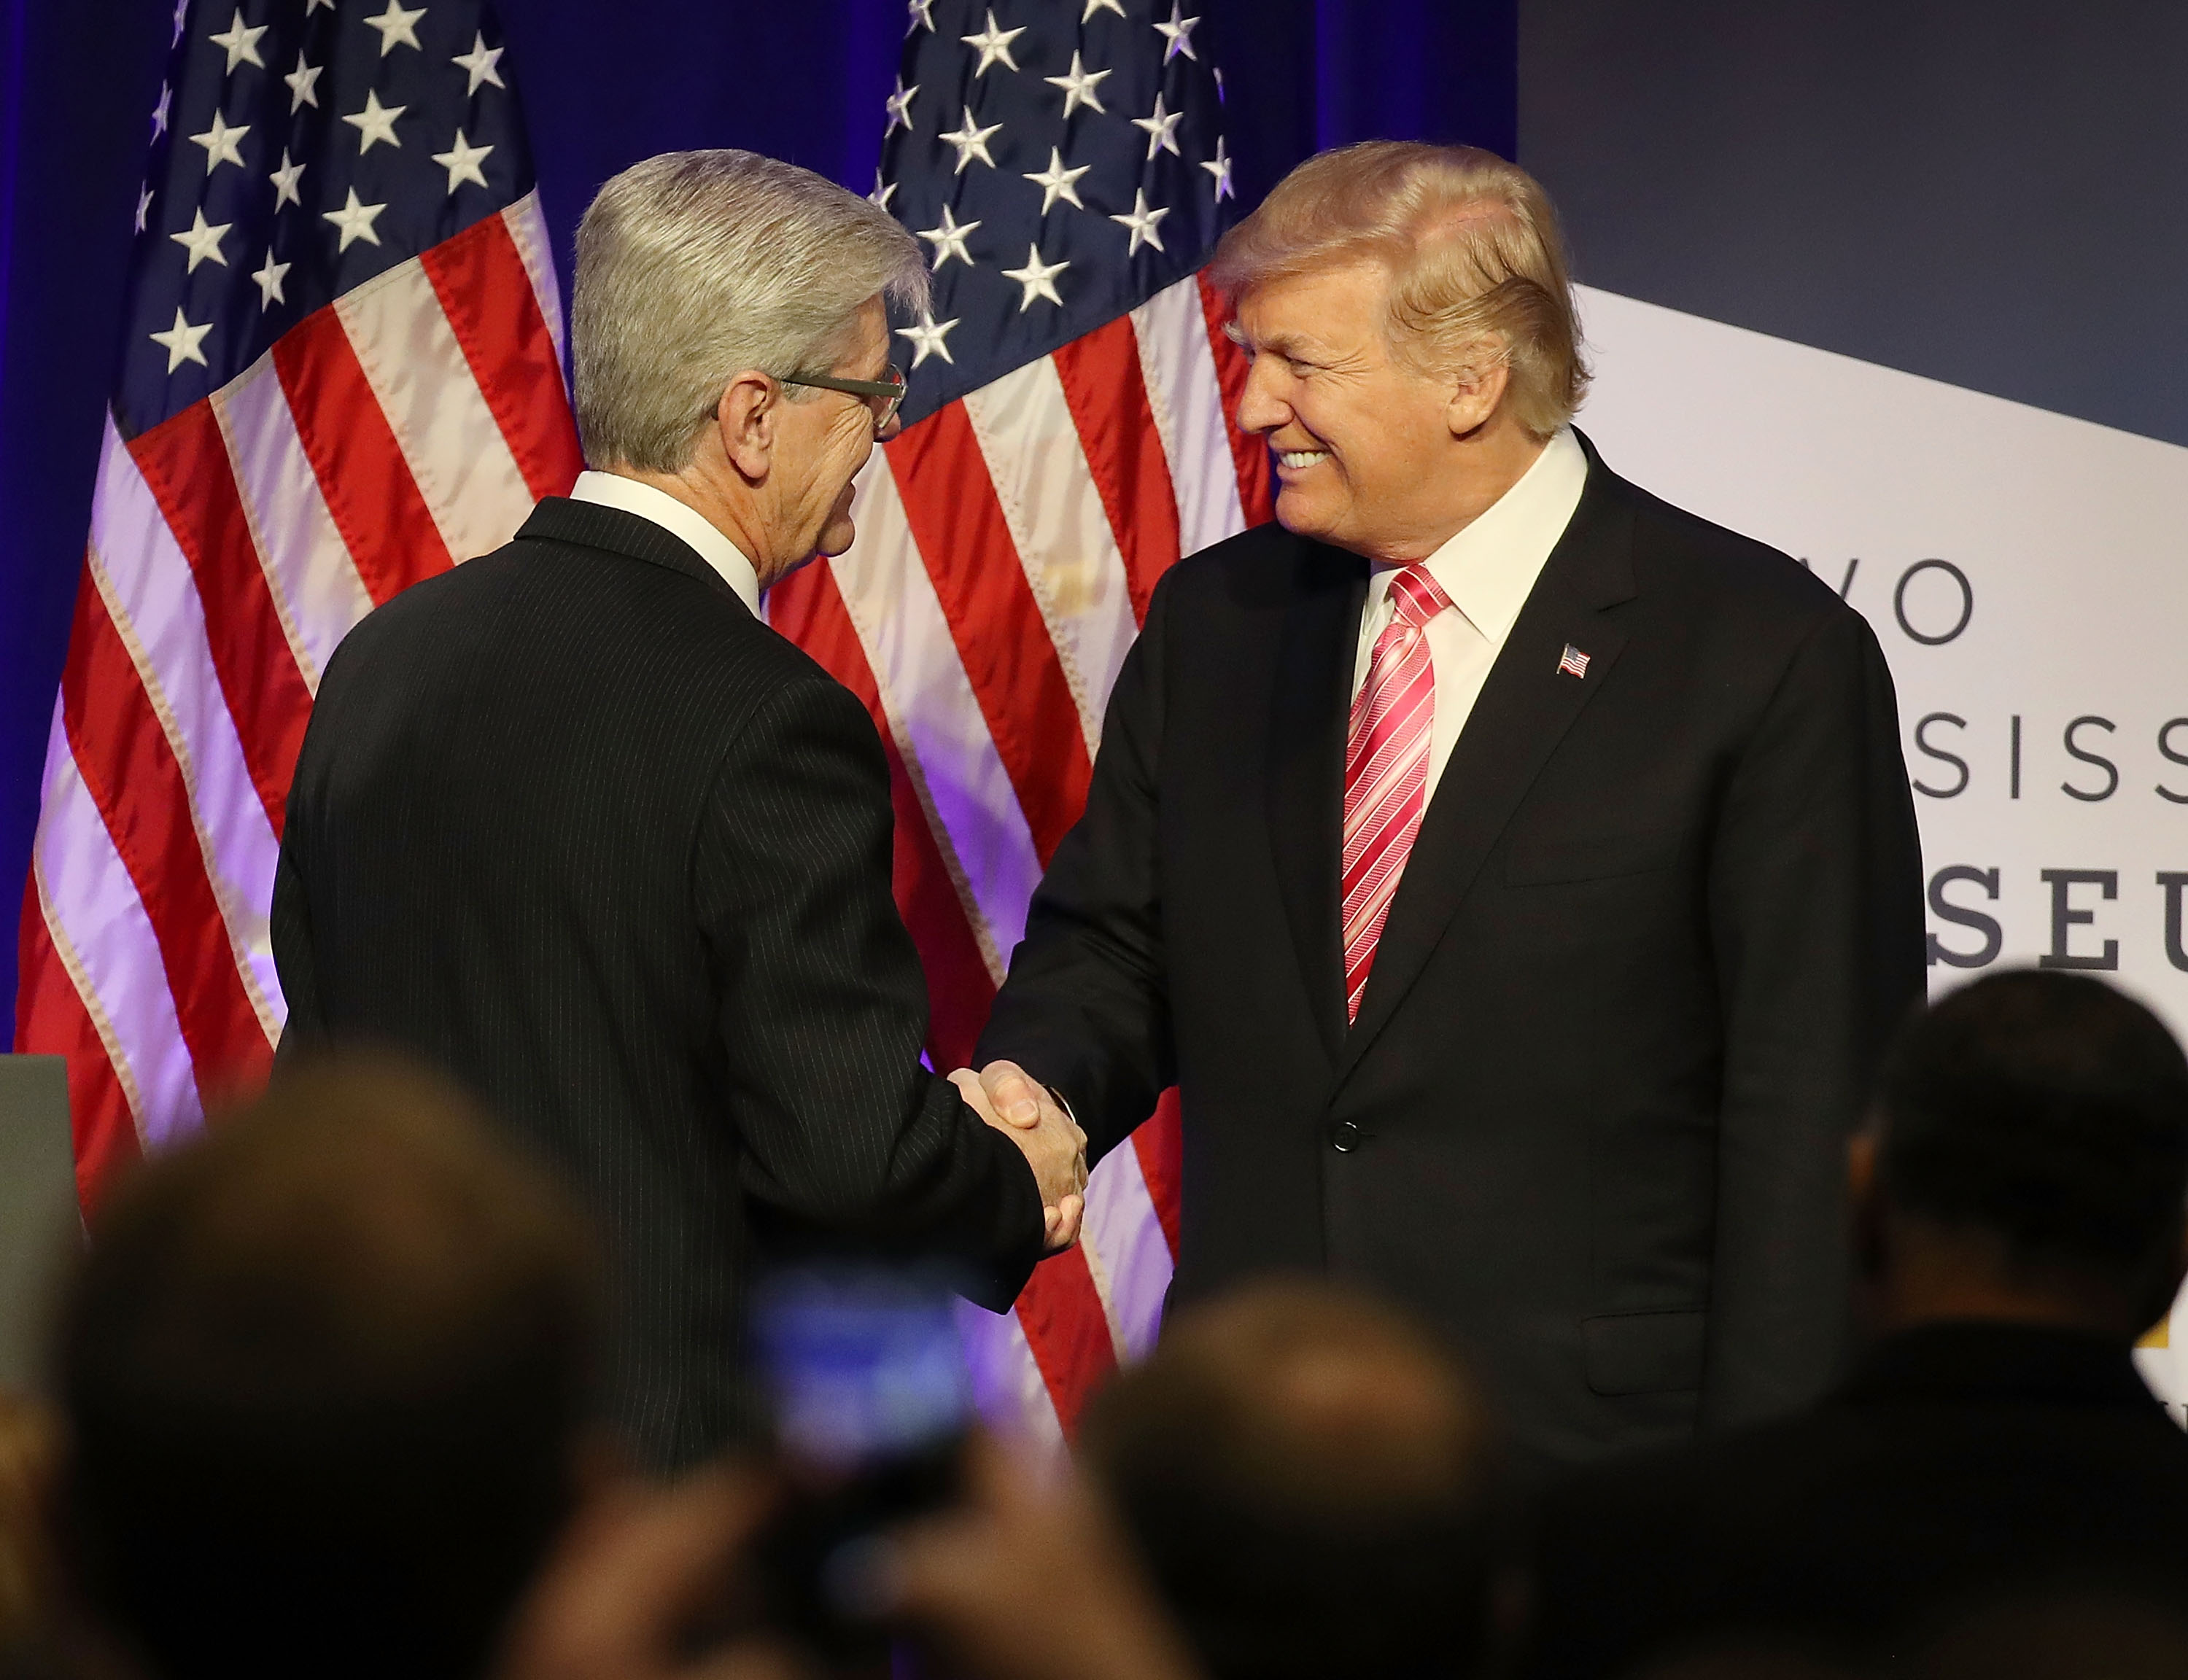 President Donald Trump is introduced by Mississippi Governor Phil Bryant to speak after touring the Mississippi Civil Rights Museum on December 9, 2017 in Jackson, Mississippi. (Getty Images)